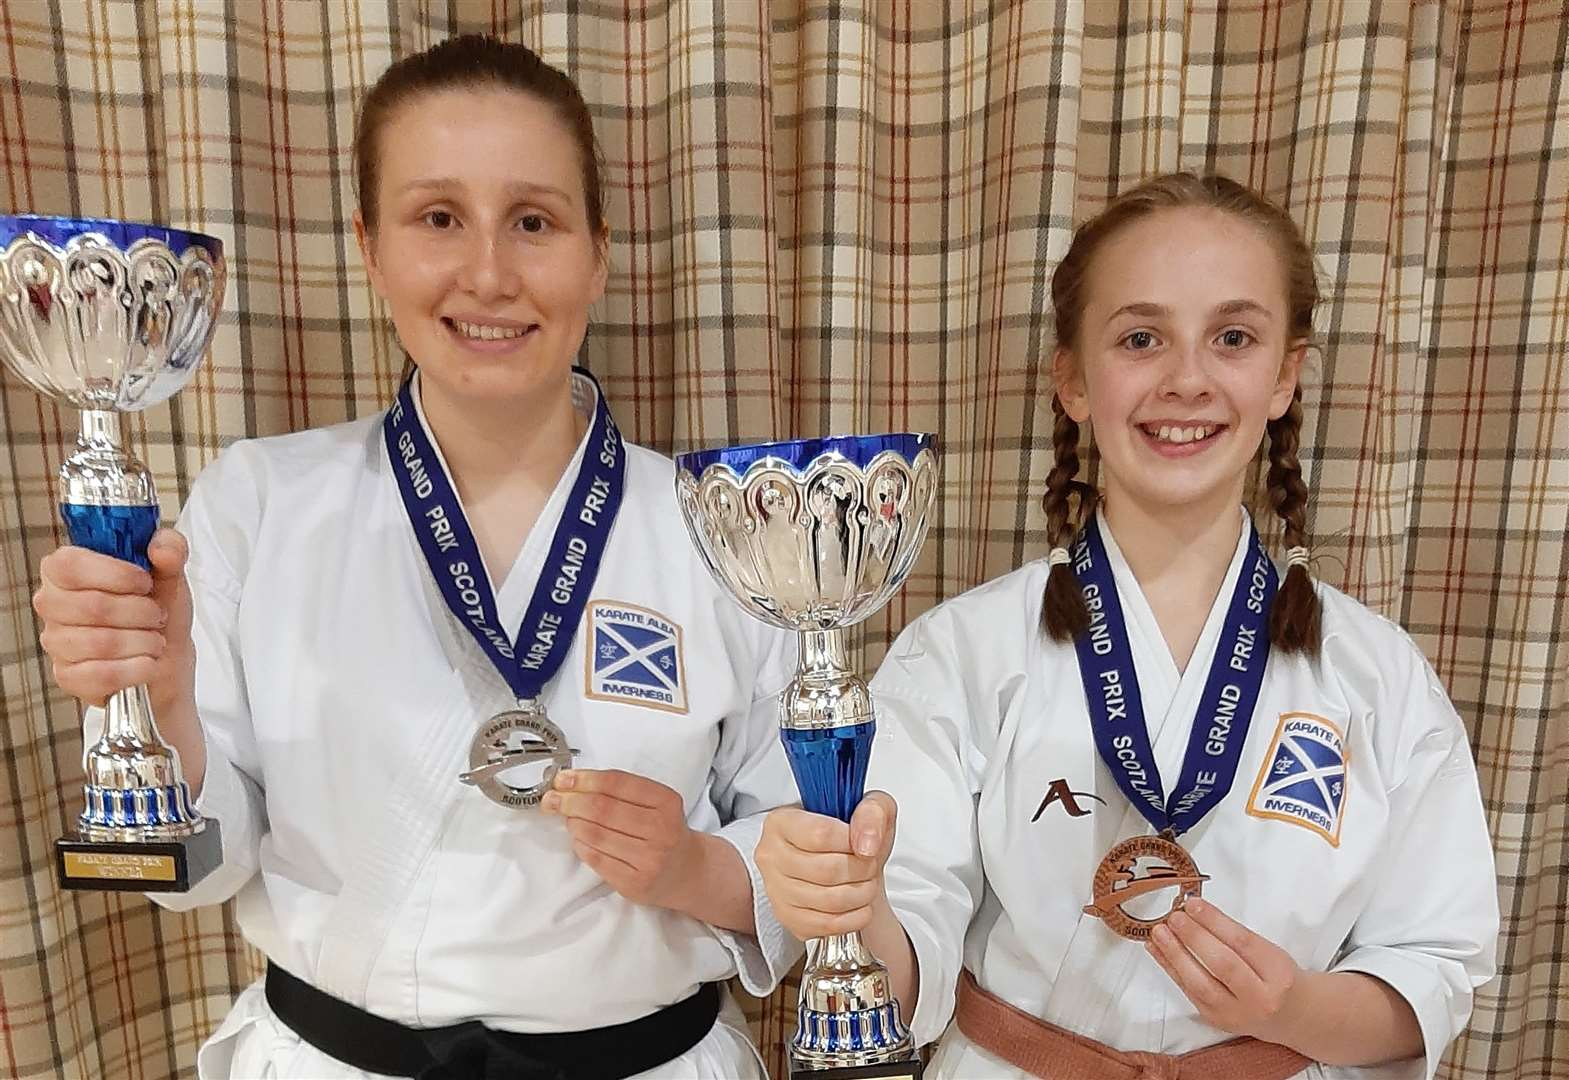 Inverness karate duo are Scottish champions - Inverness Courier